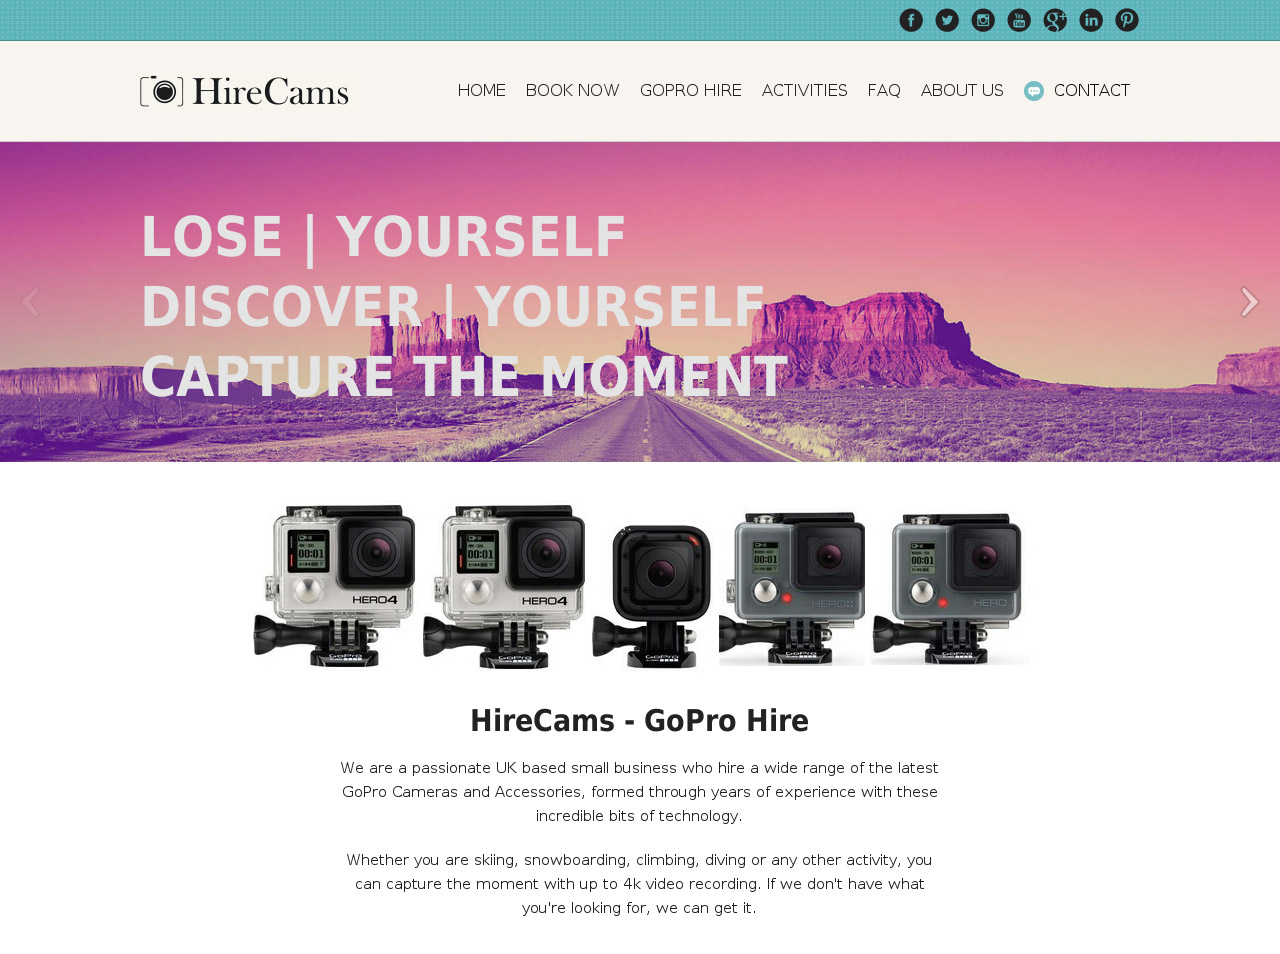 hirecams-ecommerce-web-design-seo